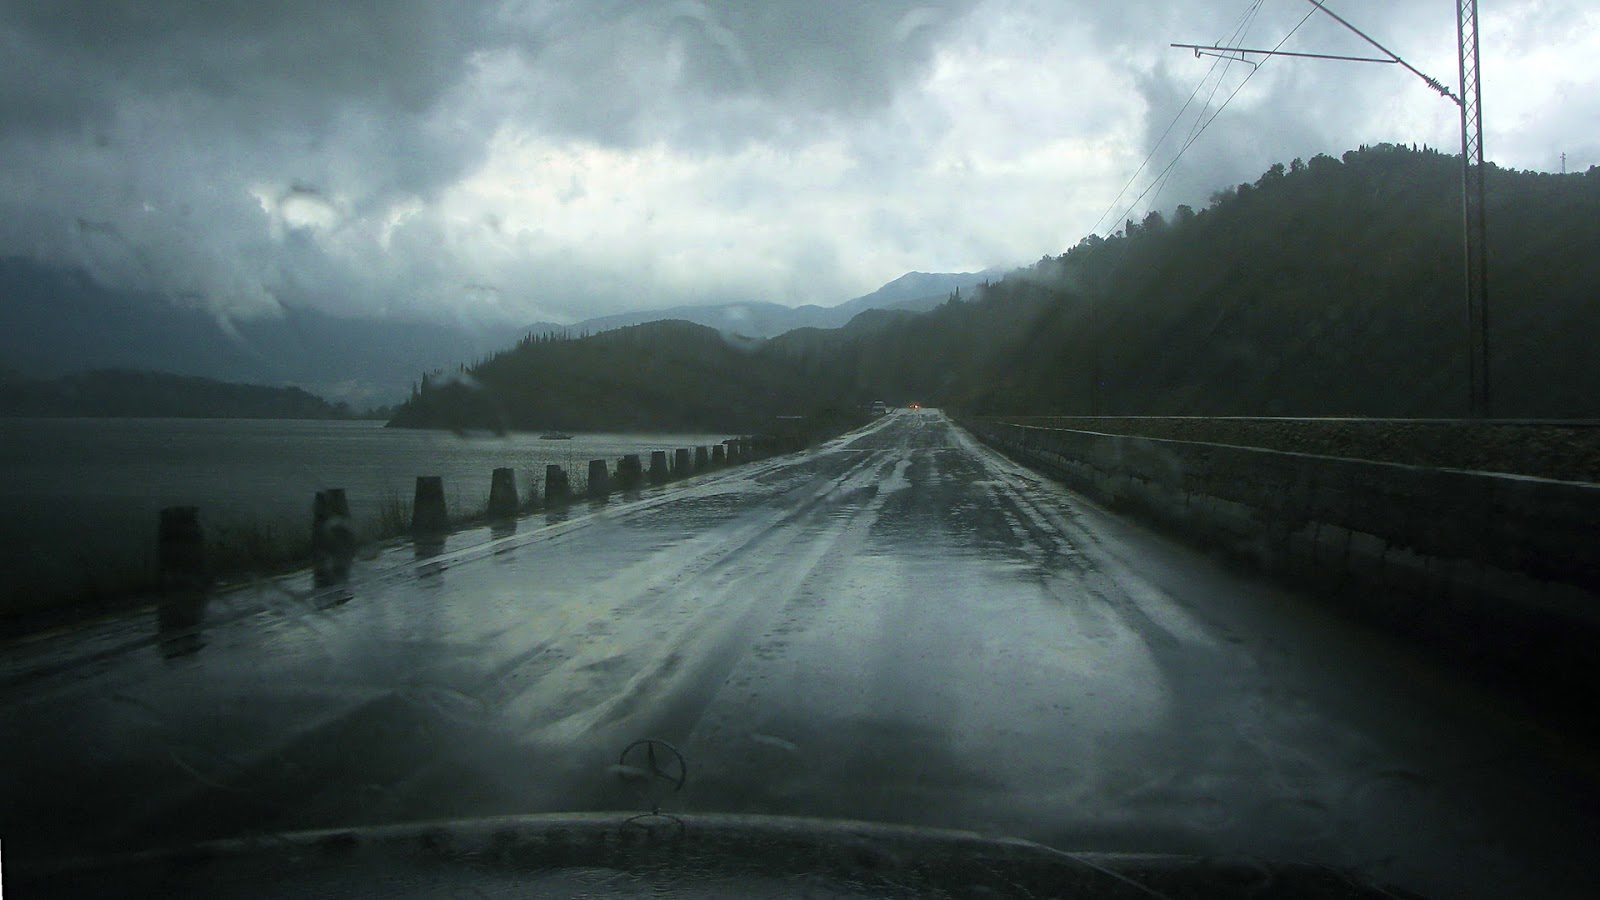 Amazing Rainy Day Quotes Pics Images And Wallpapers Hd 1600x900